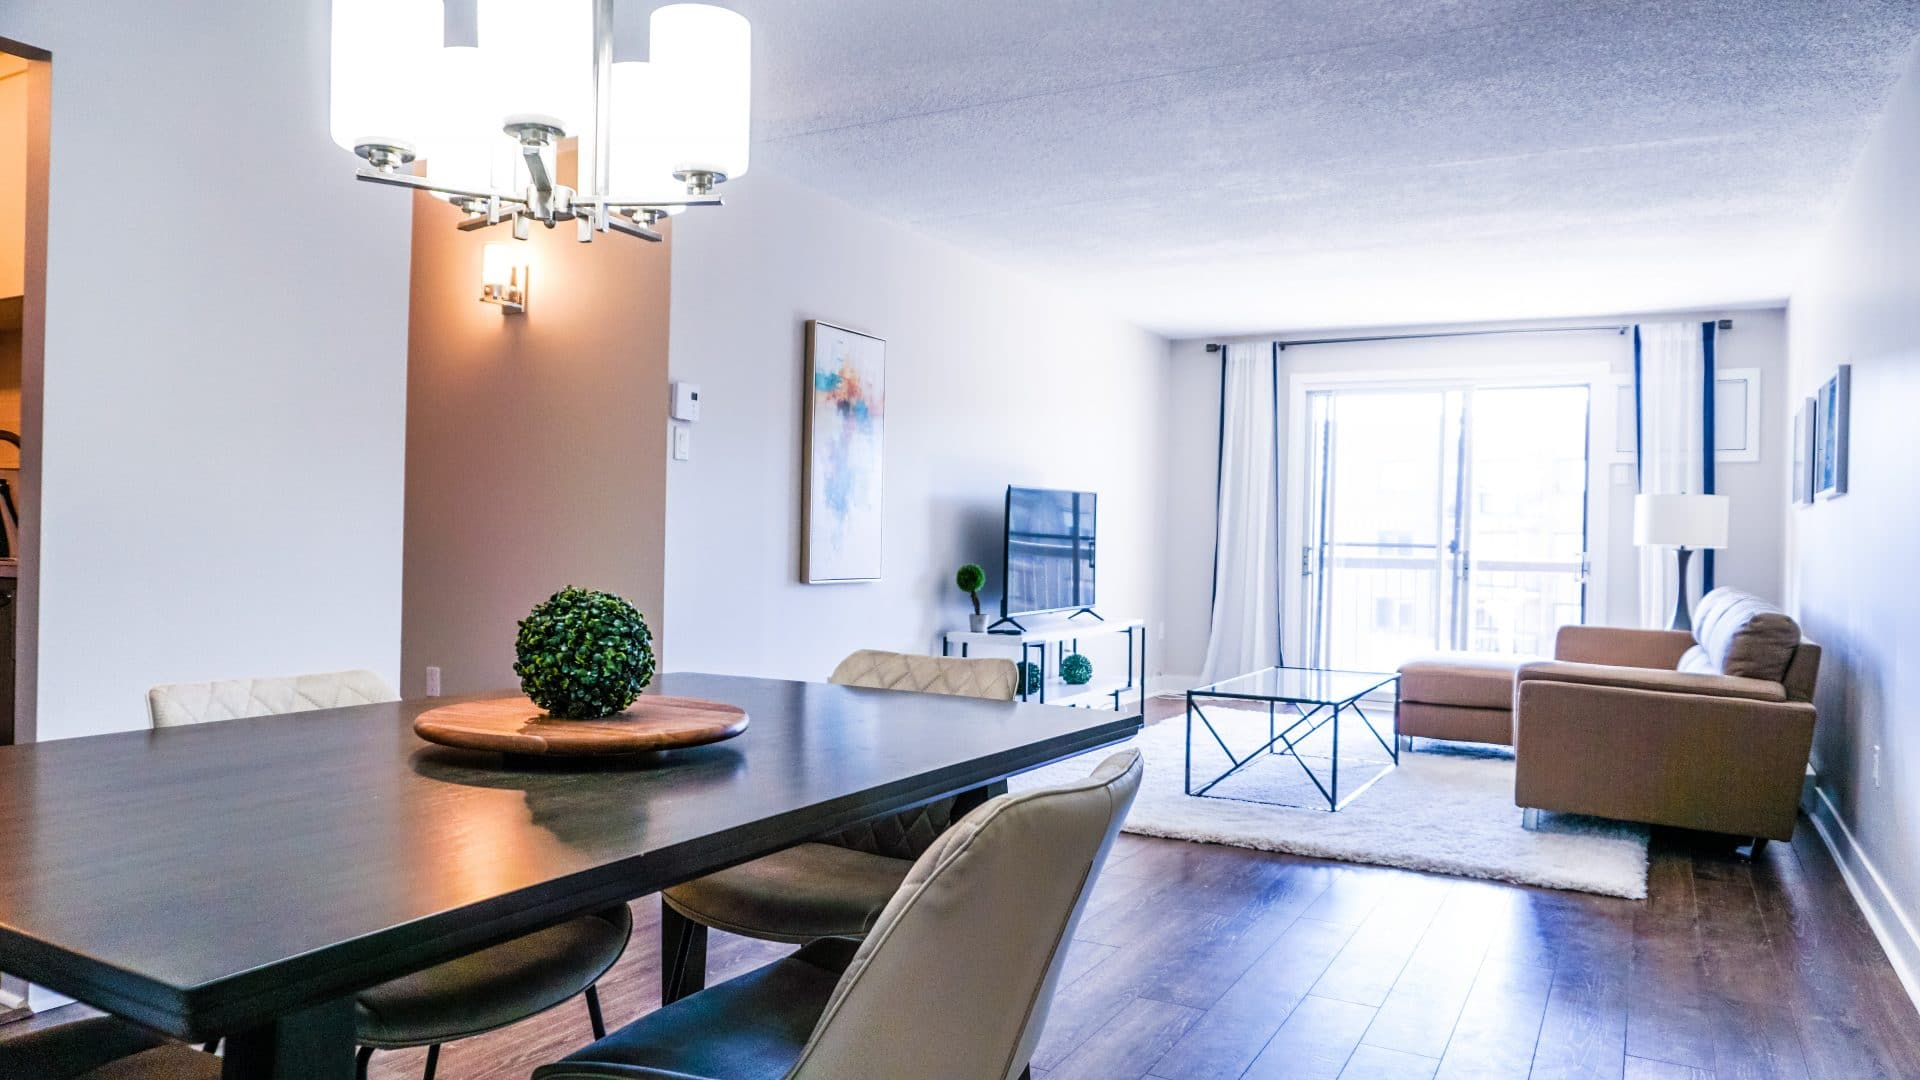 Residence Vanier - Appartement pour personnes agees - 012